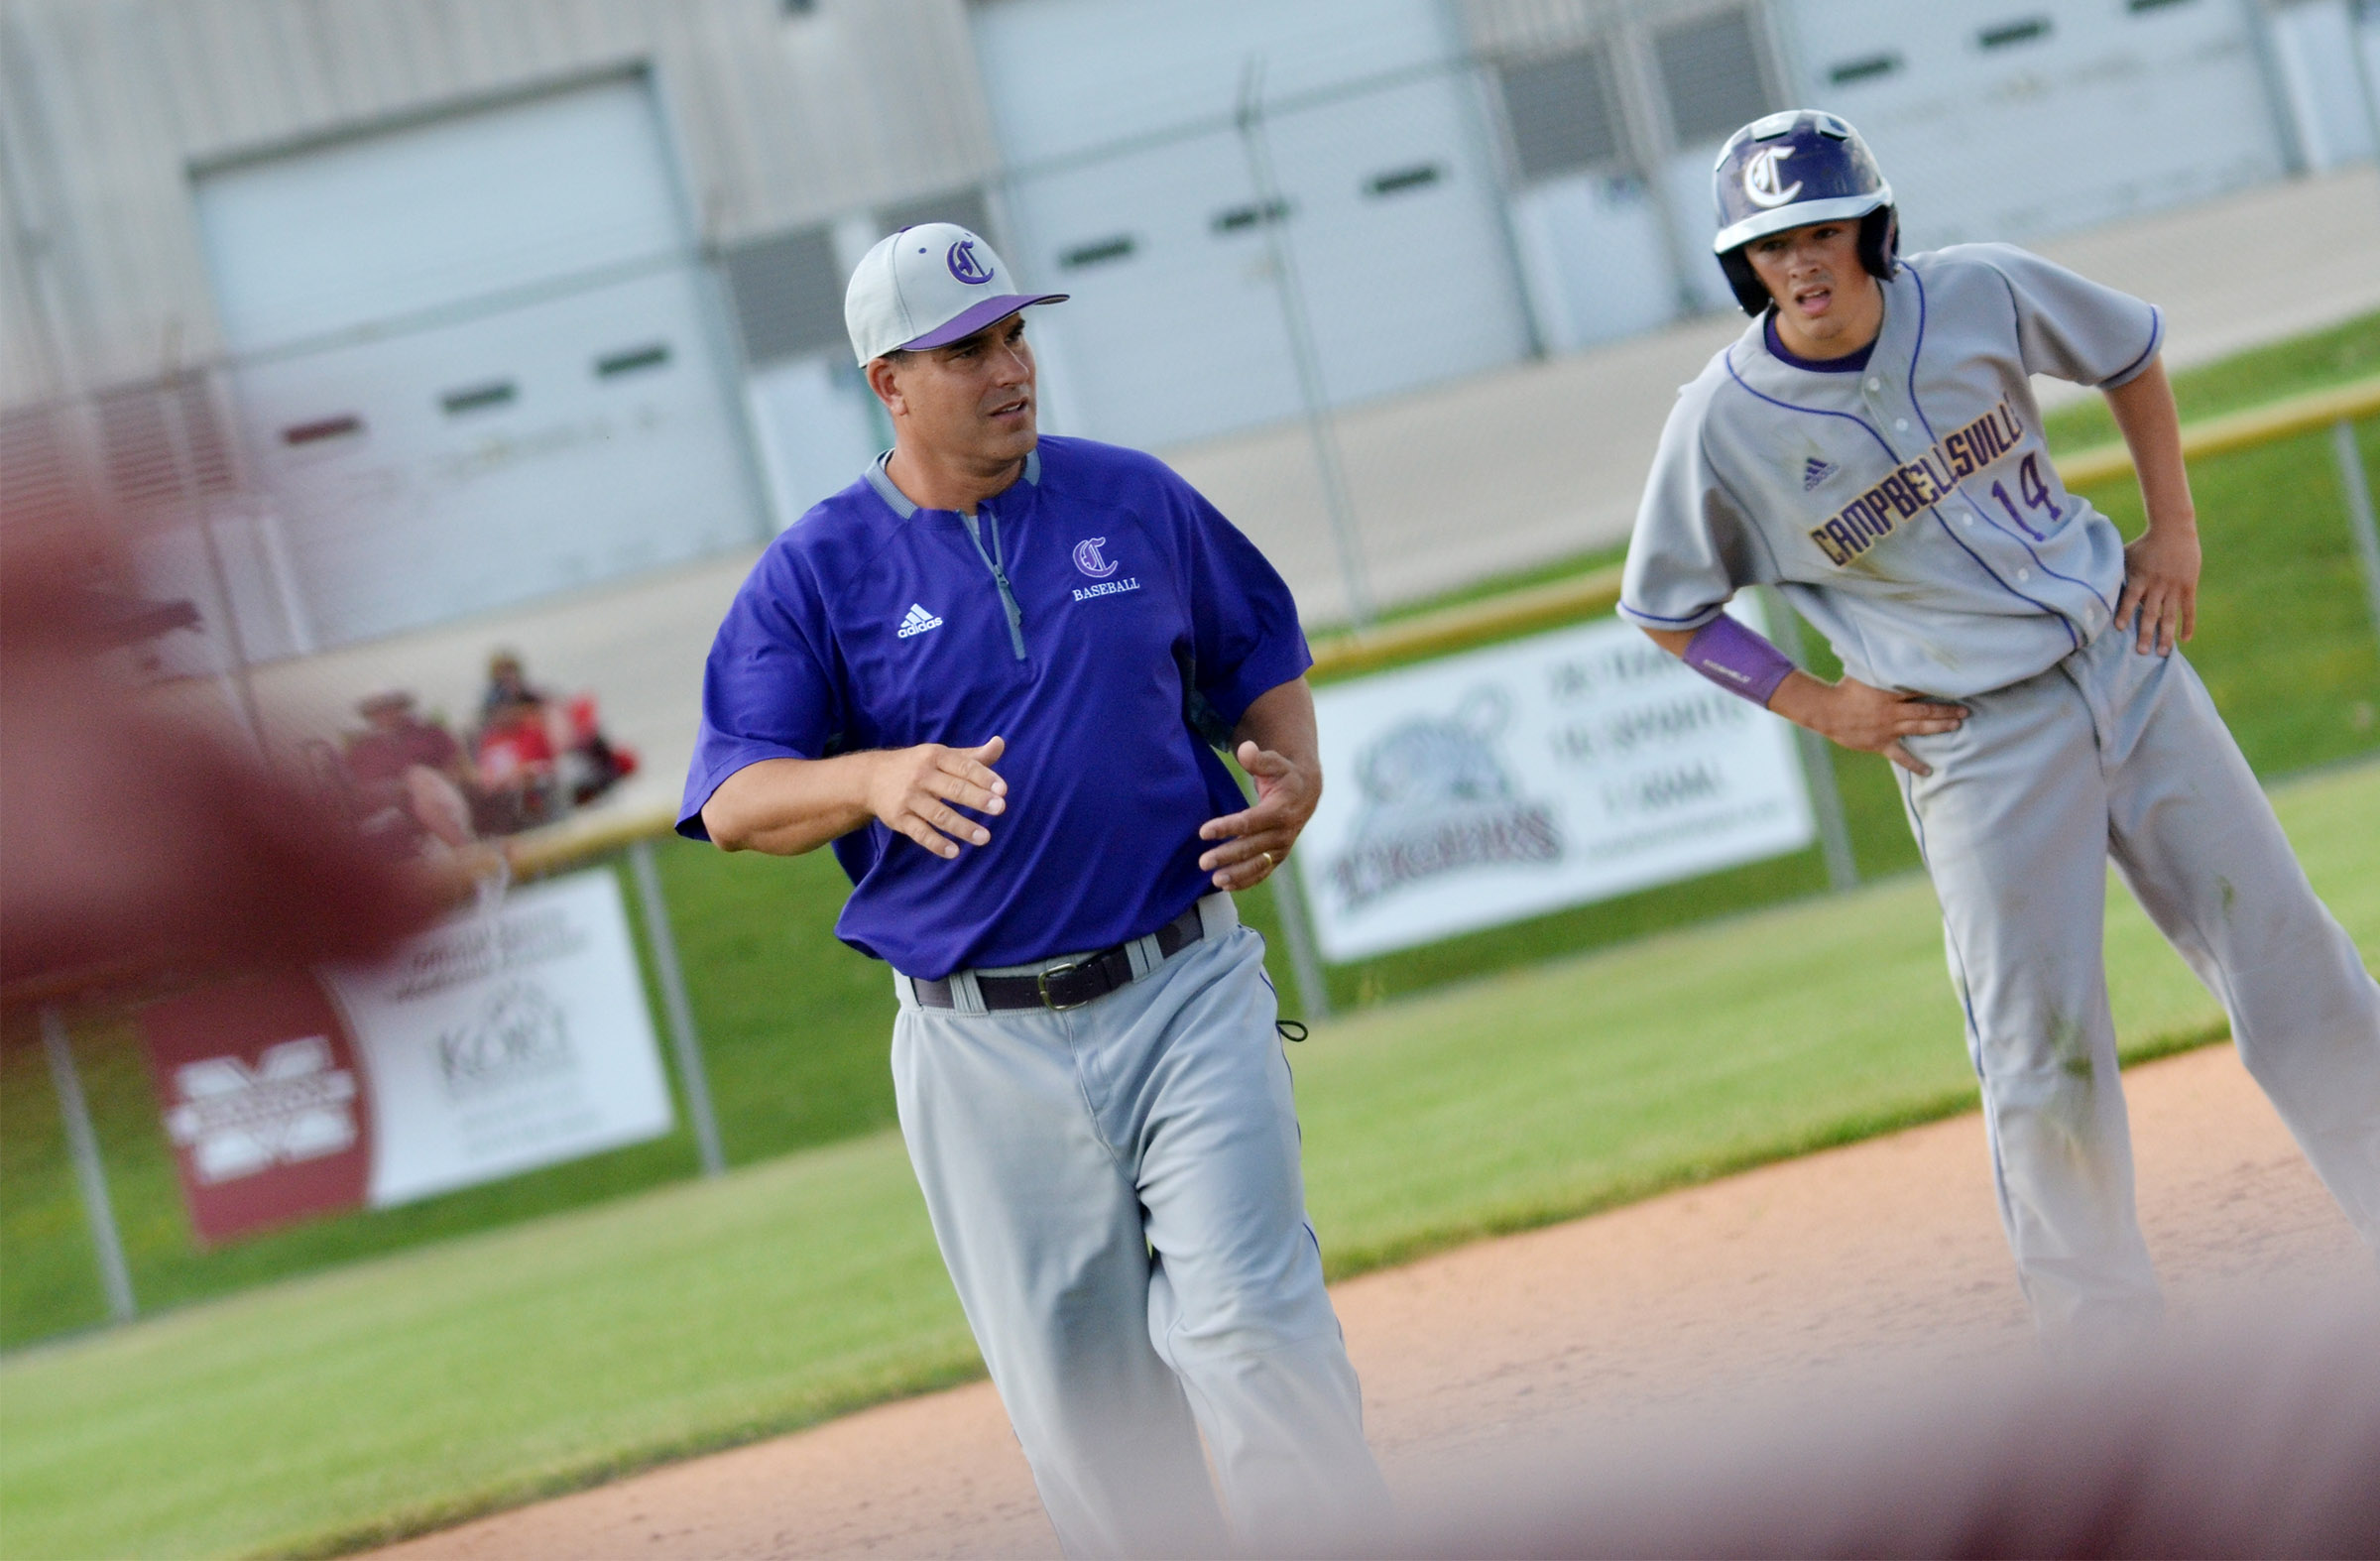 CHS head baseball coach Kirby Smith talks to sophomore Ryan Kearney.